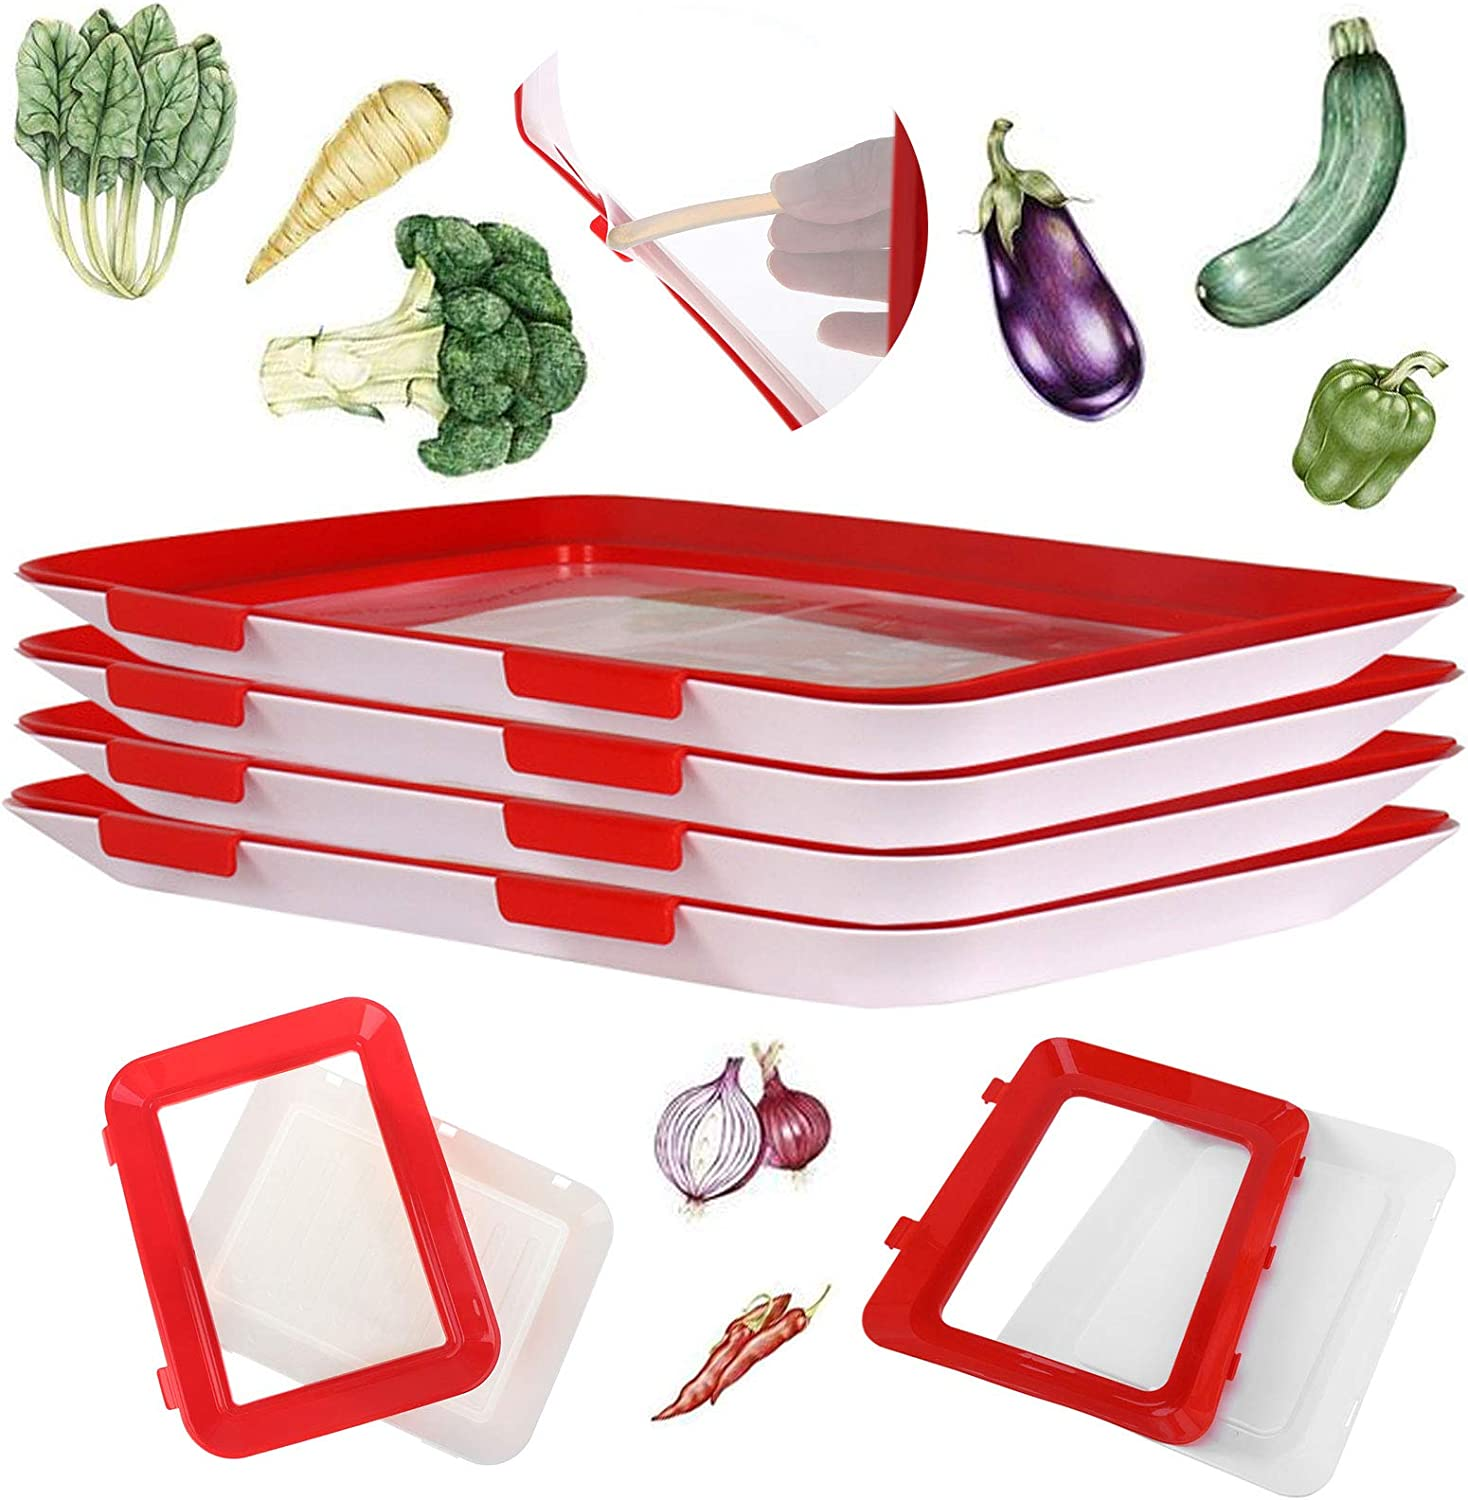 HHK Food Plastic Preservation Tray,Stackable Food Tray Reusable Creative Food Preservation Tray for Food Preservation ,Freezer Containers Food Storage Tray with Lid. (Red & white 4 Pack)